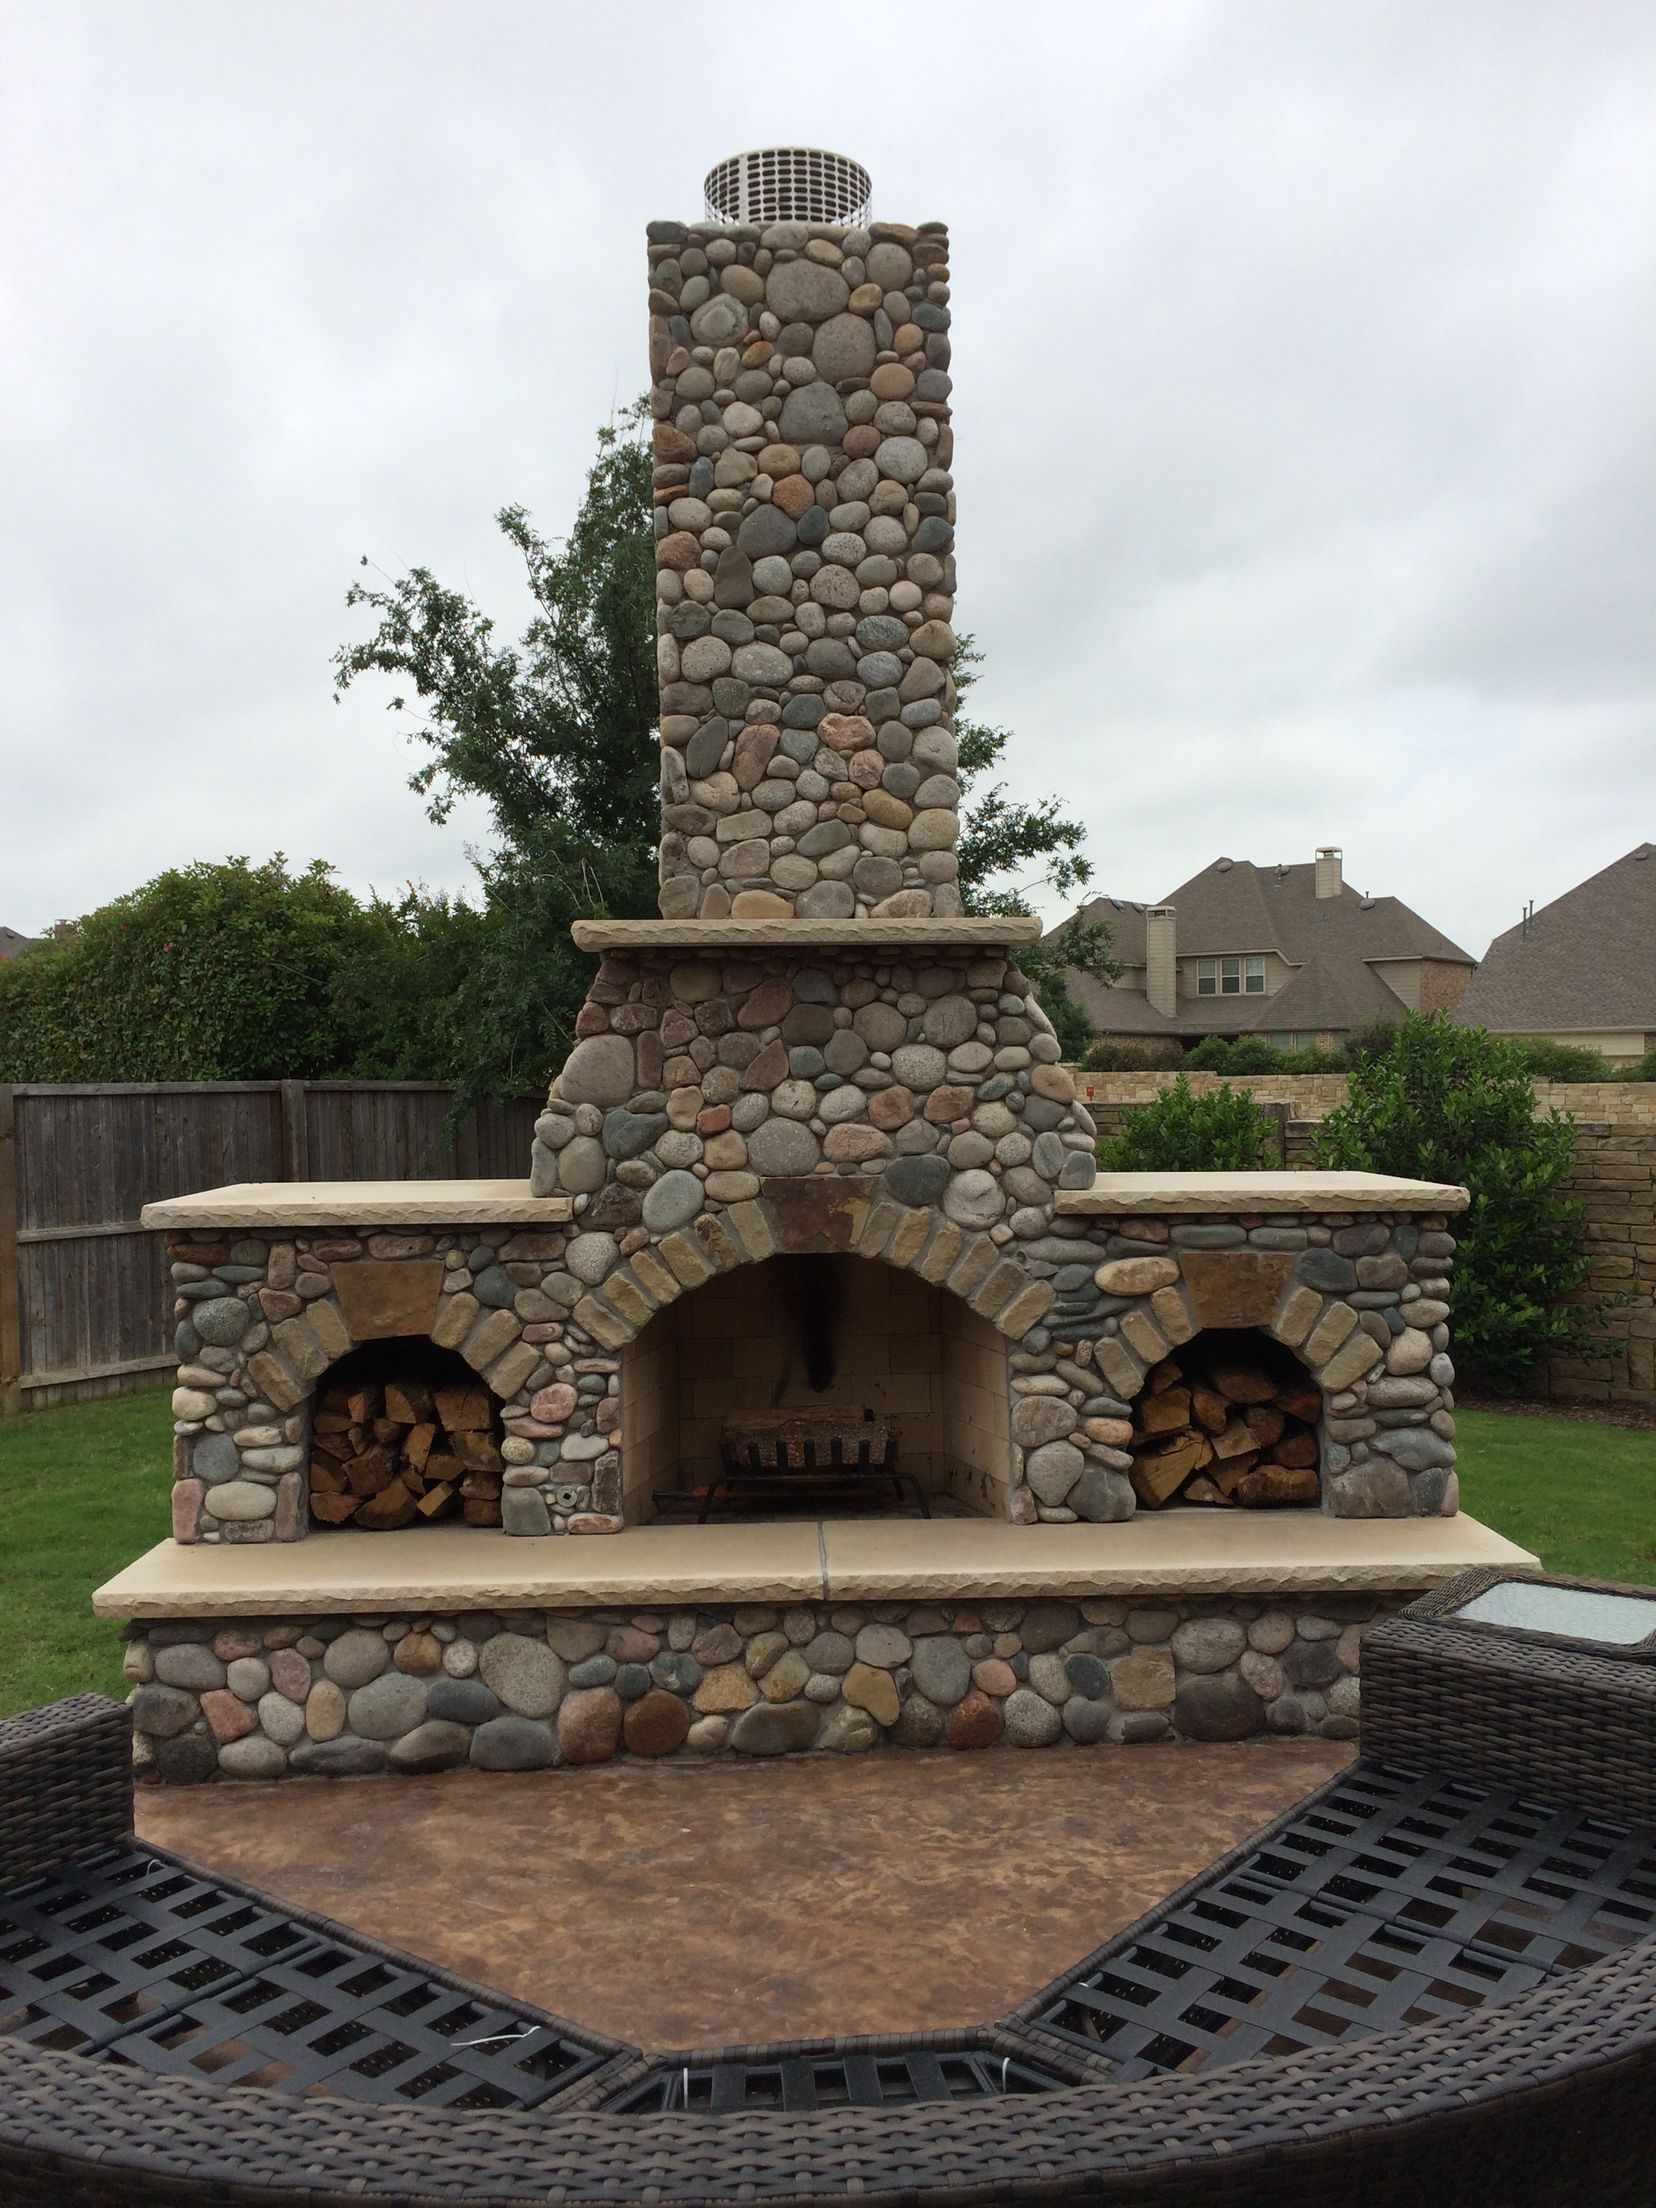 Outdoor Fireplace Built With River Rock Designed And Built By Green Meadows Landscaping Lewisvill Mountain Patio Outdoor Fireplace Outdoor Fireplace Designs